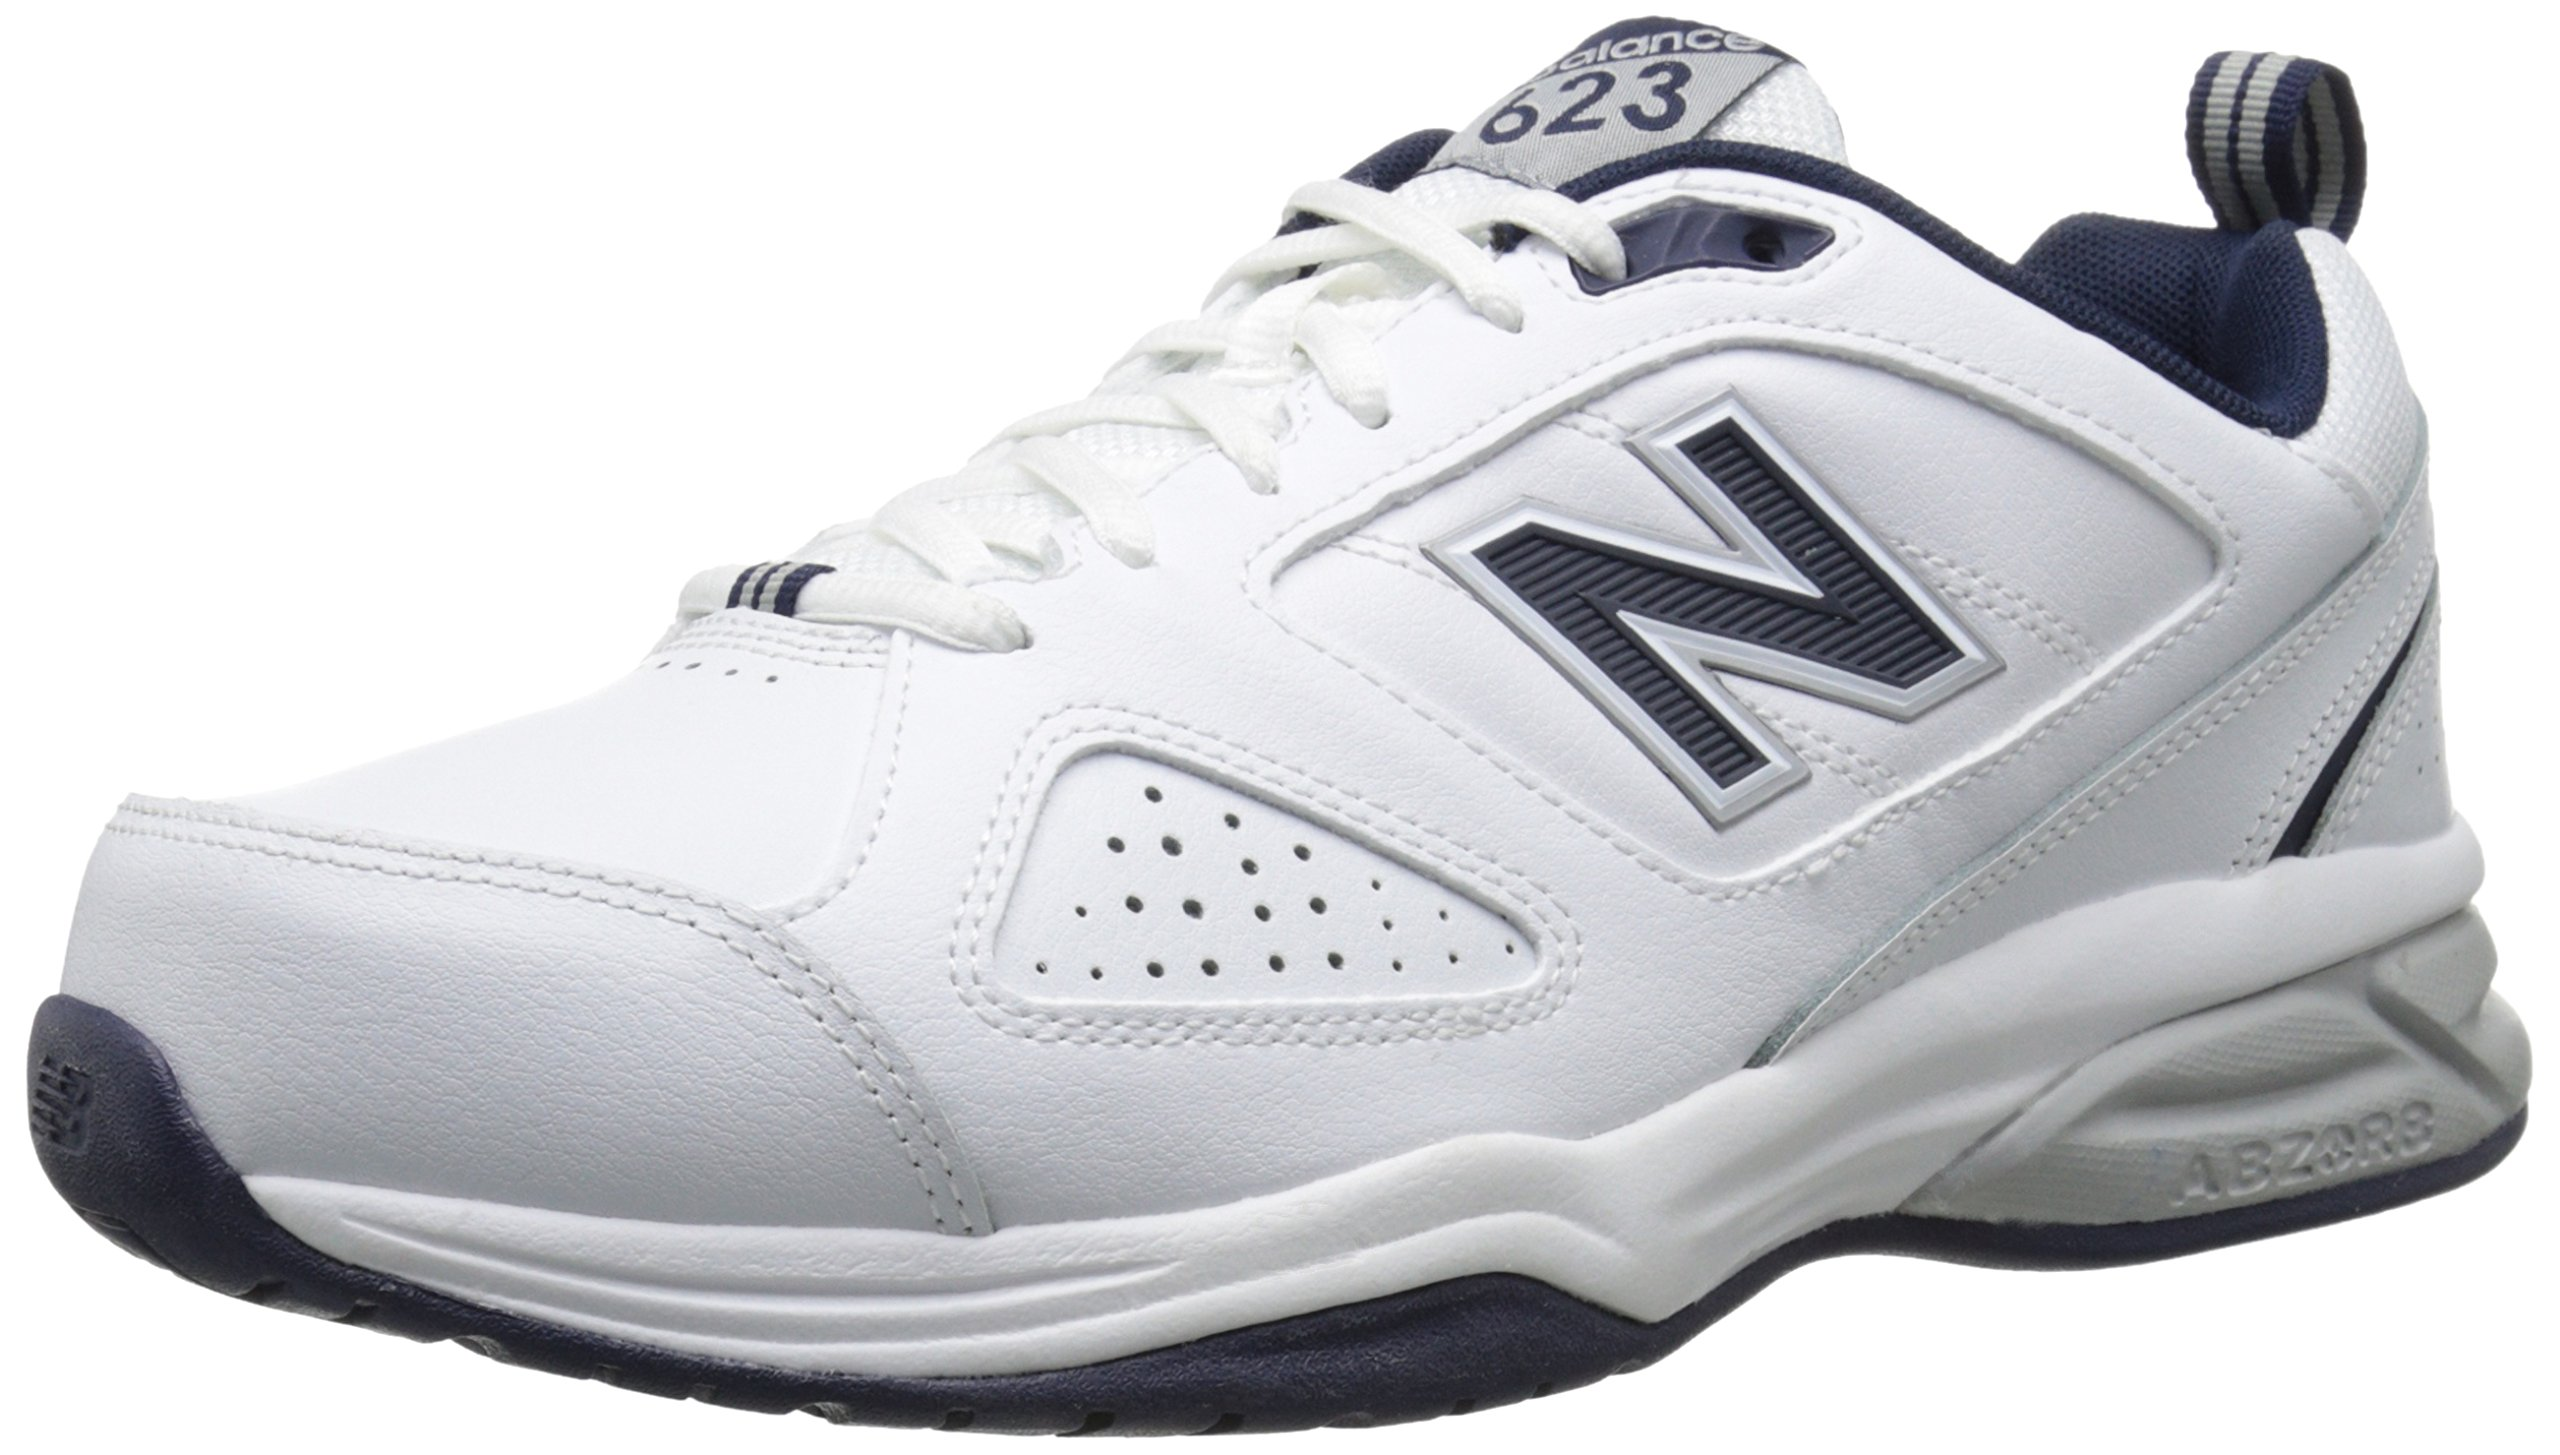 New Balance Men's MX623v3 Casual Comfort Training Shoe,  White/Navy, 10 M US by New Balance